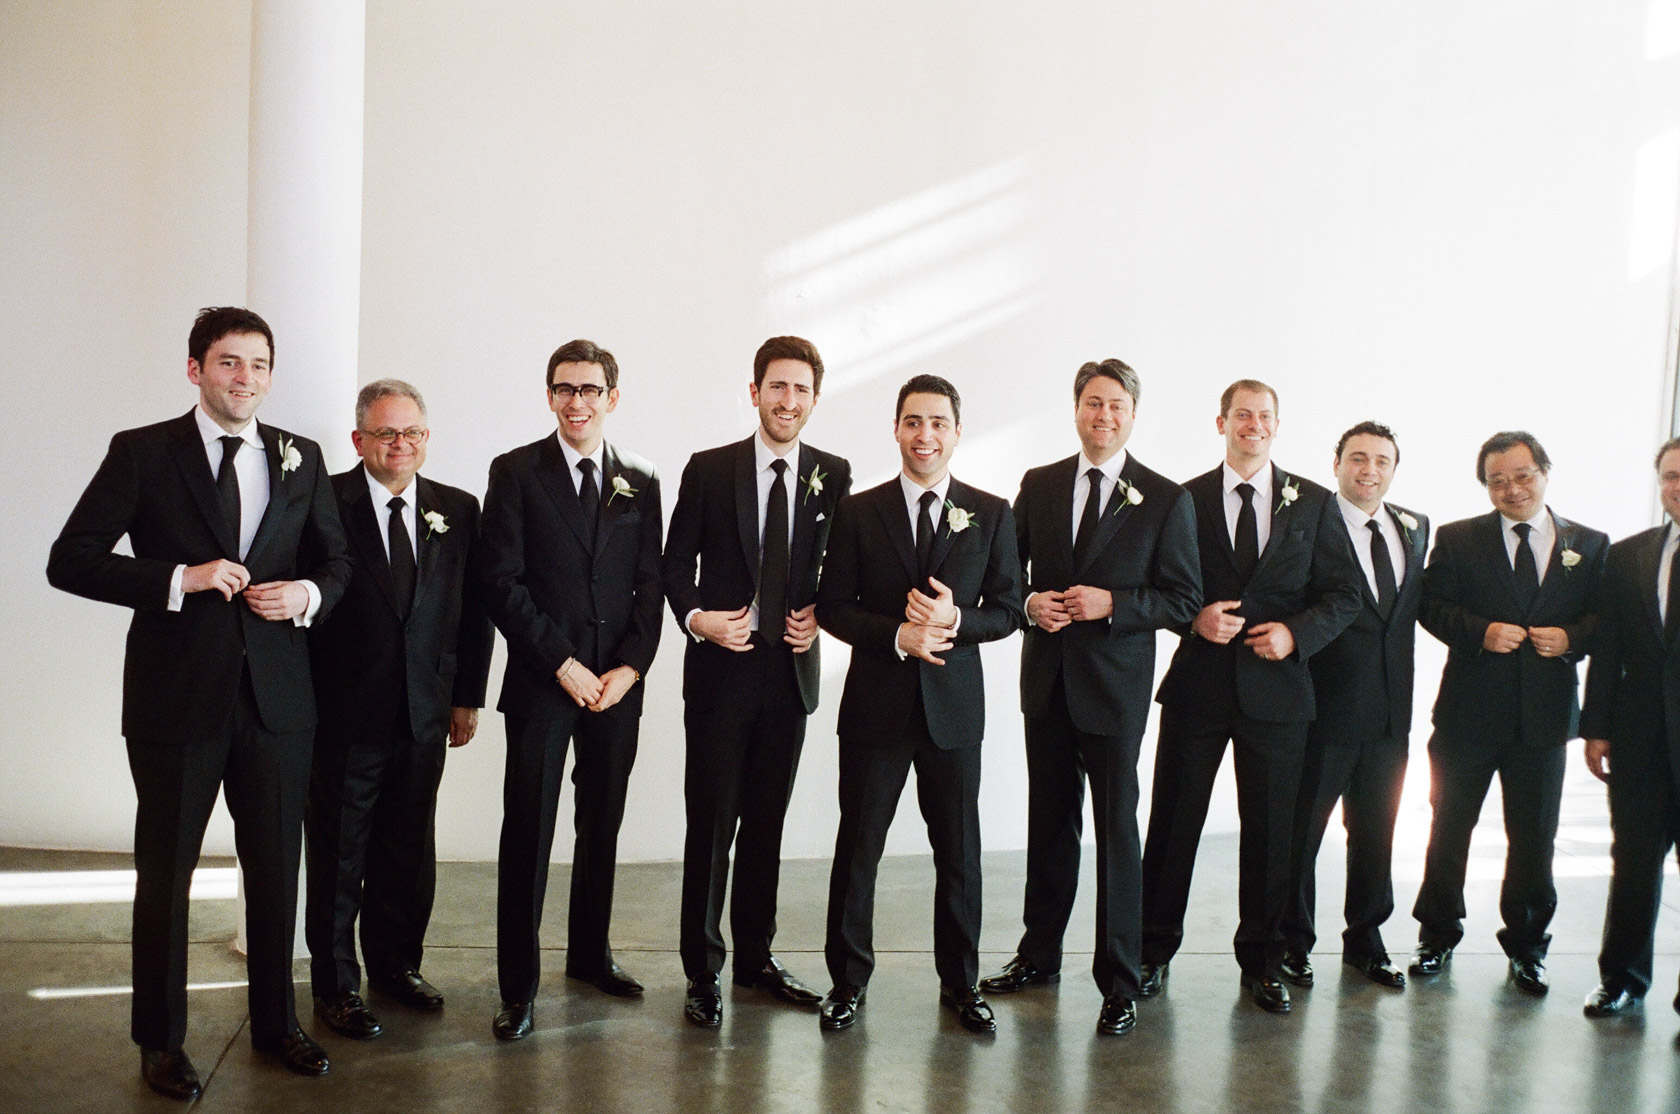 new orleans wedding groomsmen on film at cac - 07